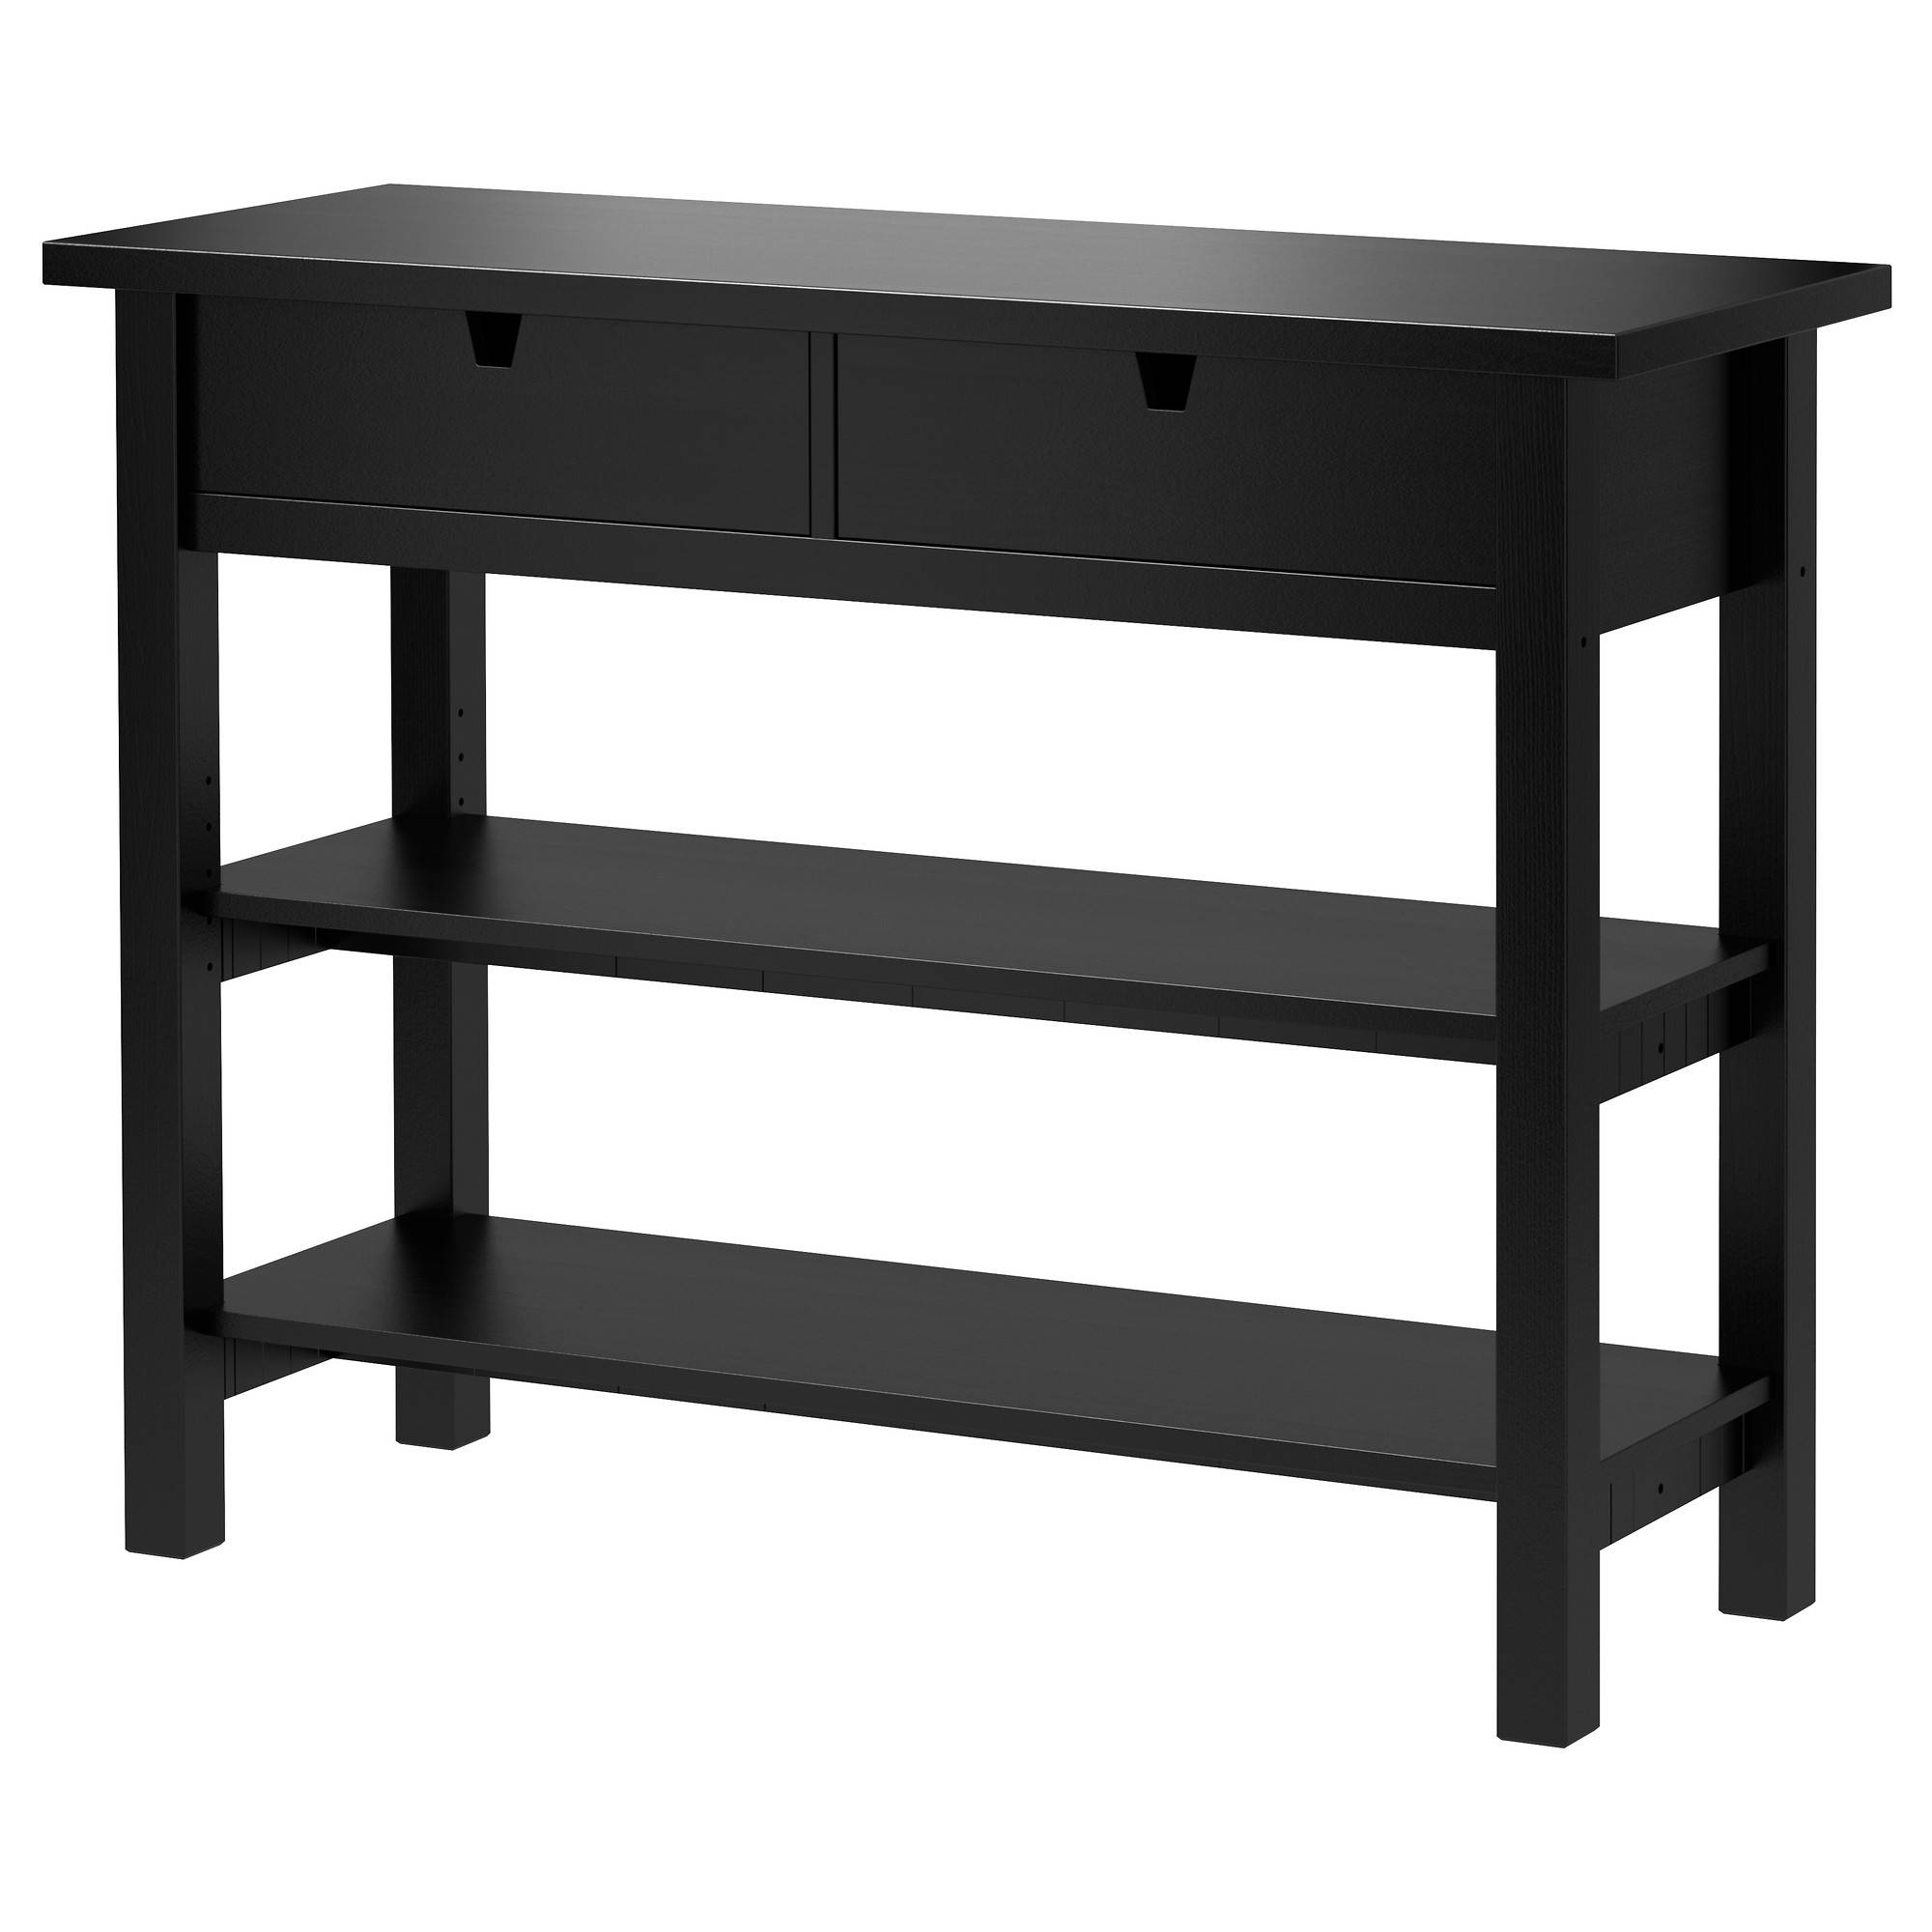 Norden Sideboard – Ikea Intended For Most Current Black Sideboard Cabinets (#9 of 15)